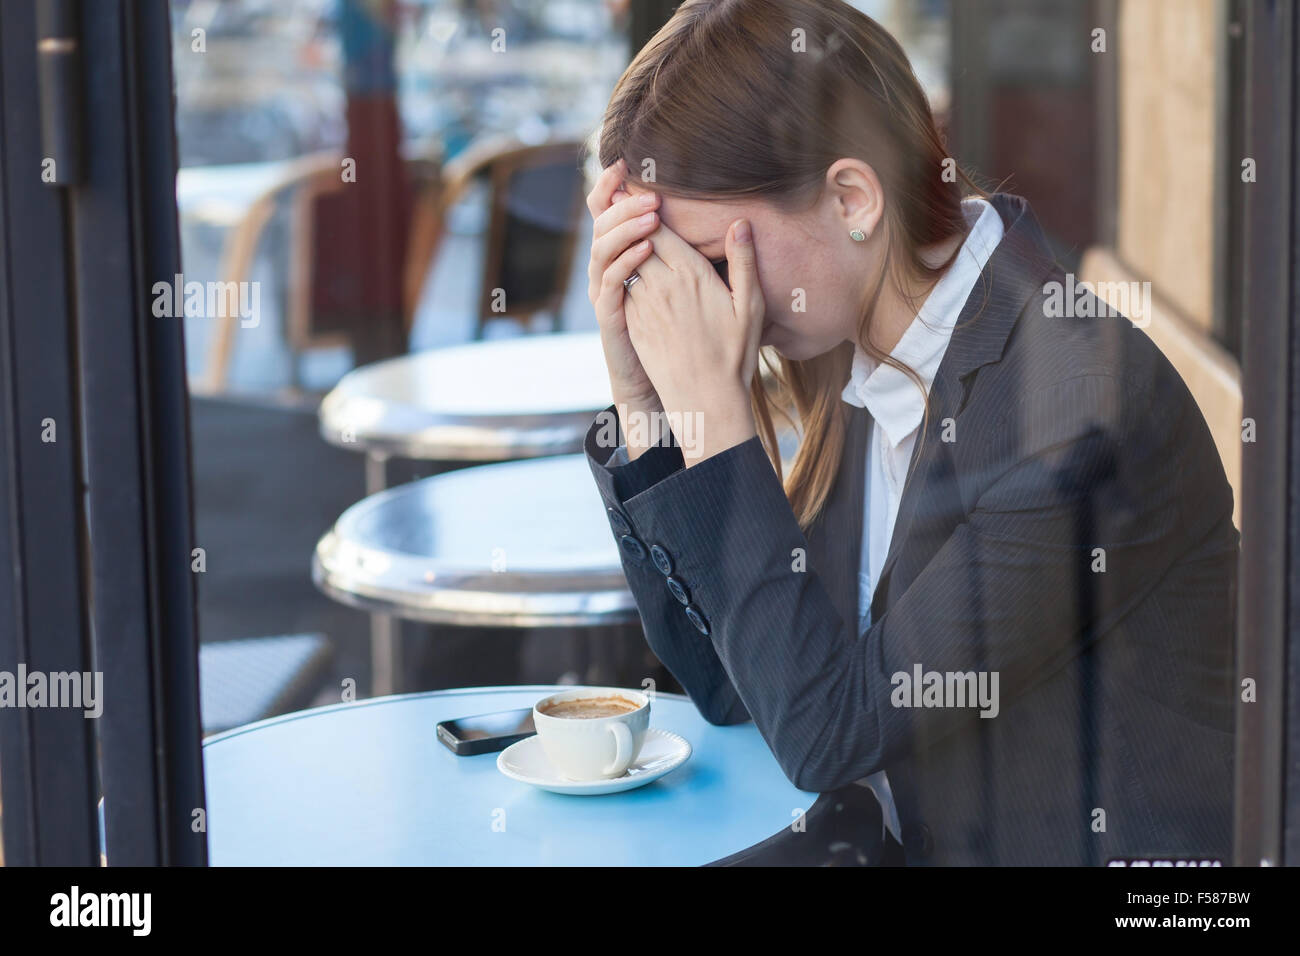 Donna che piange in cafe Foto Stock